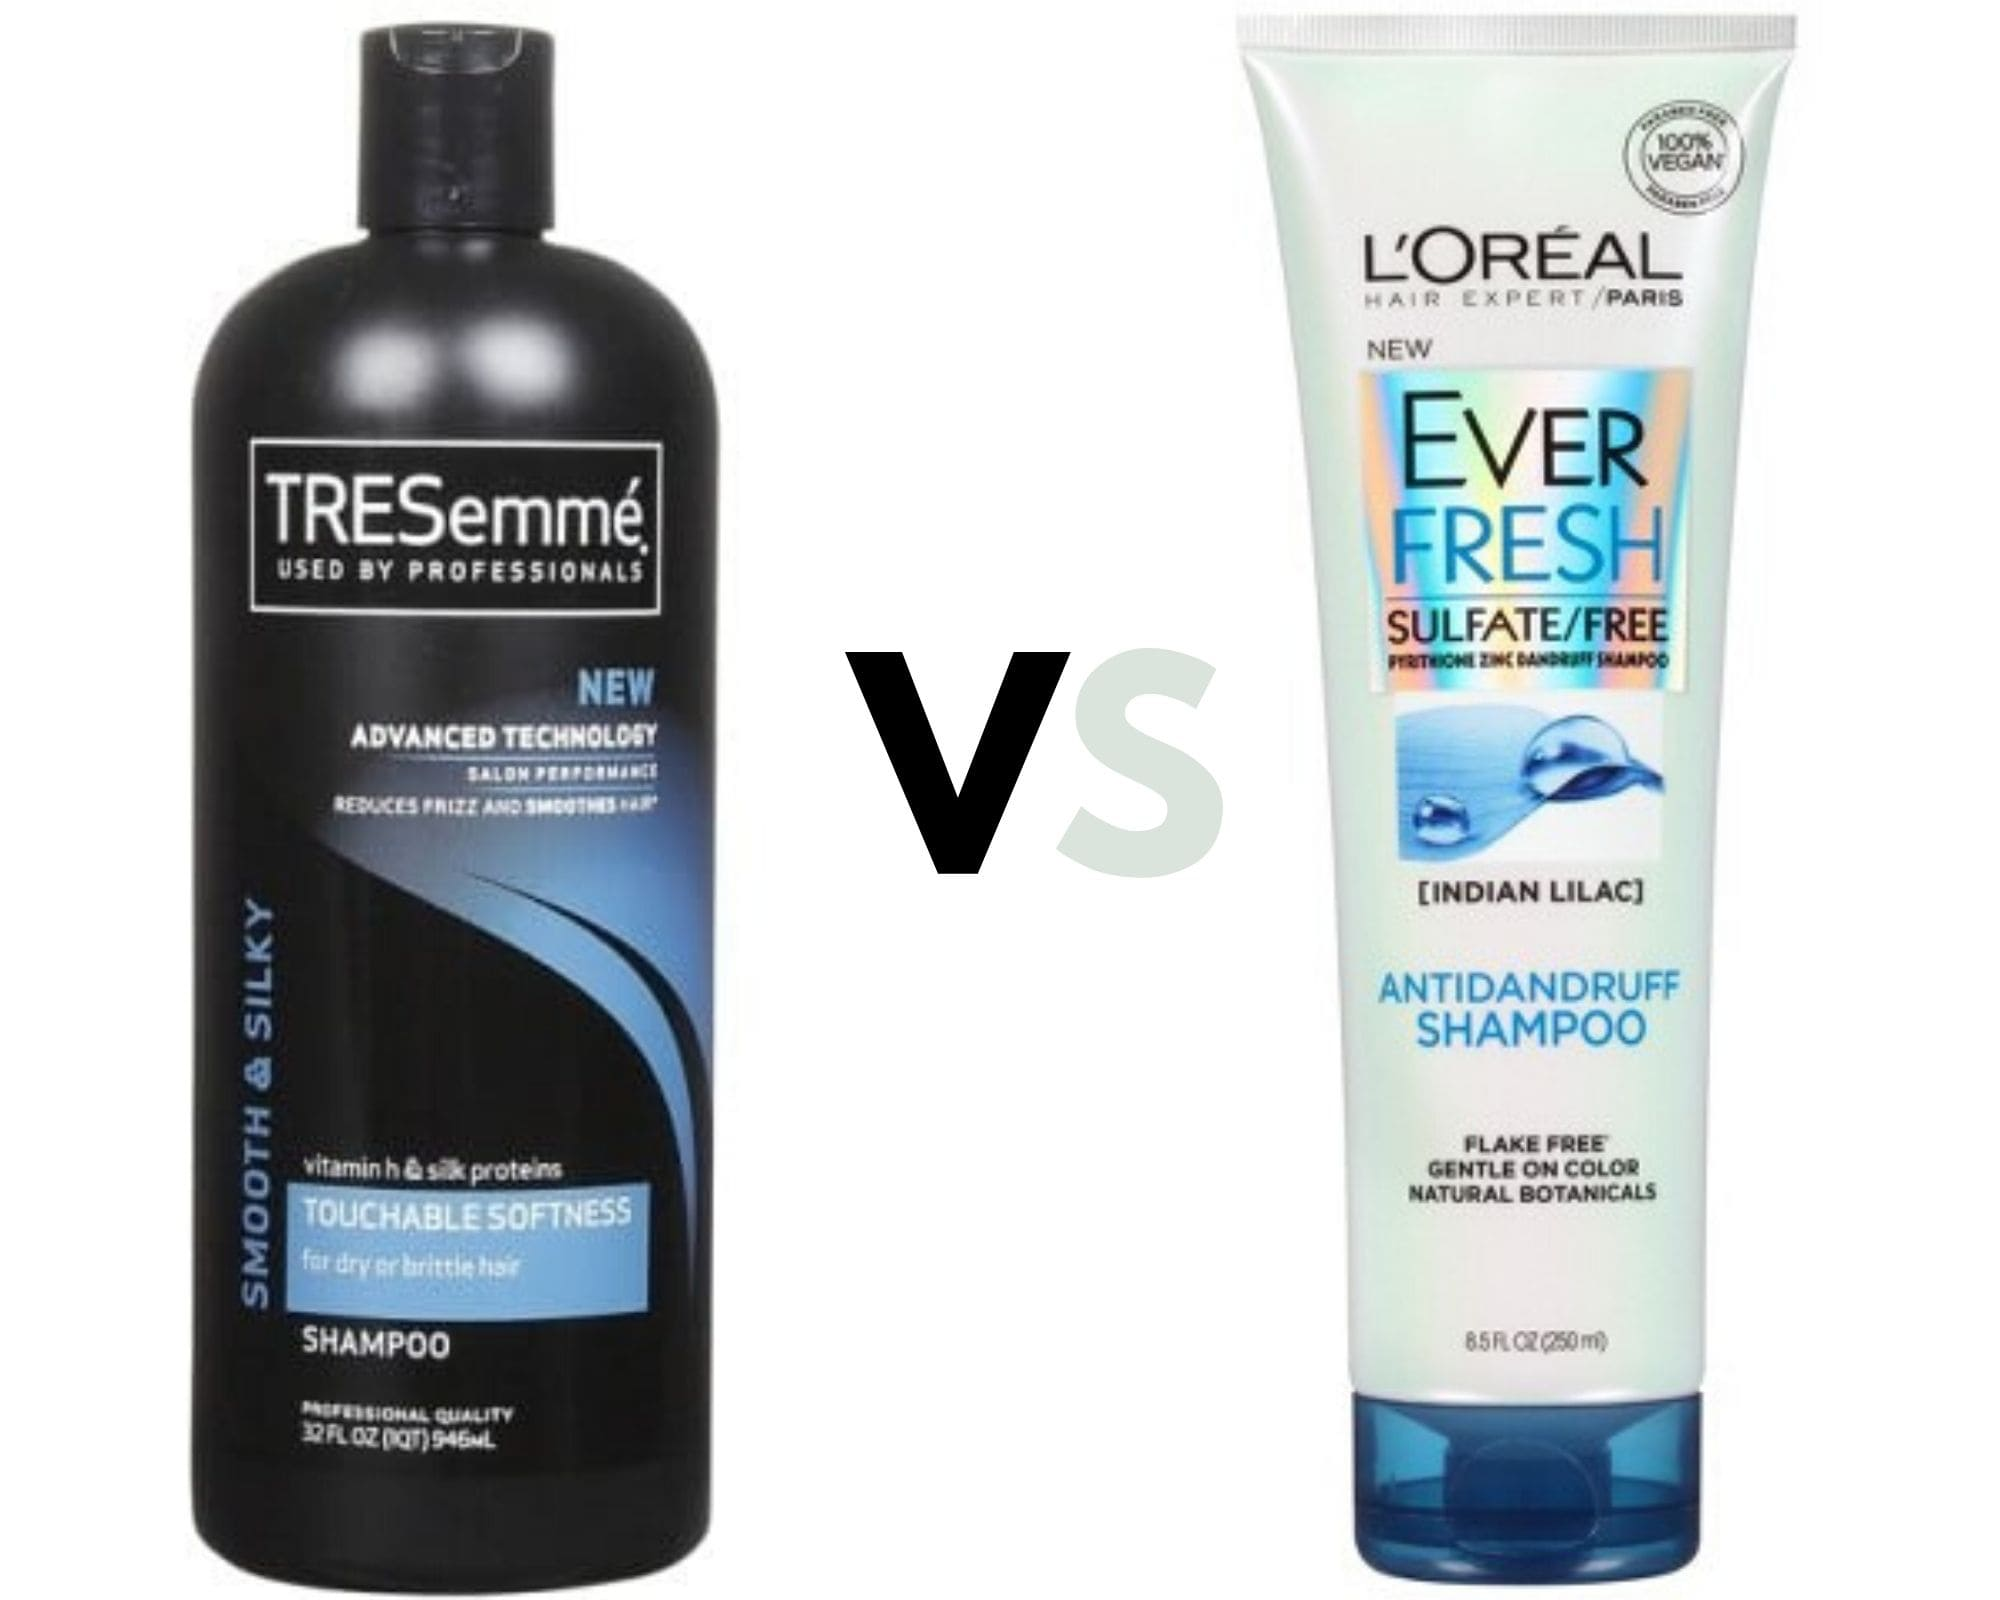 l'oreal or tresemme